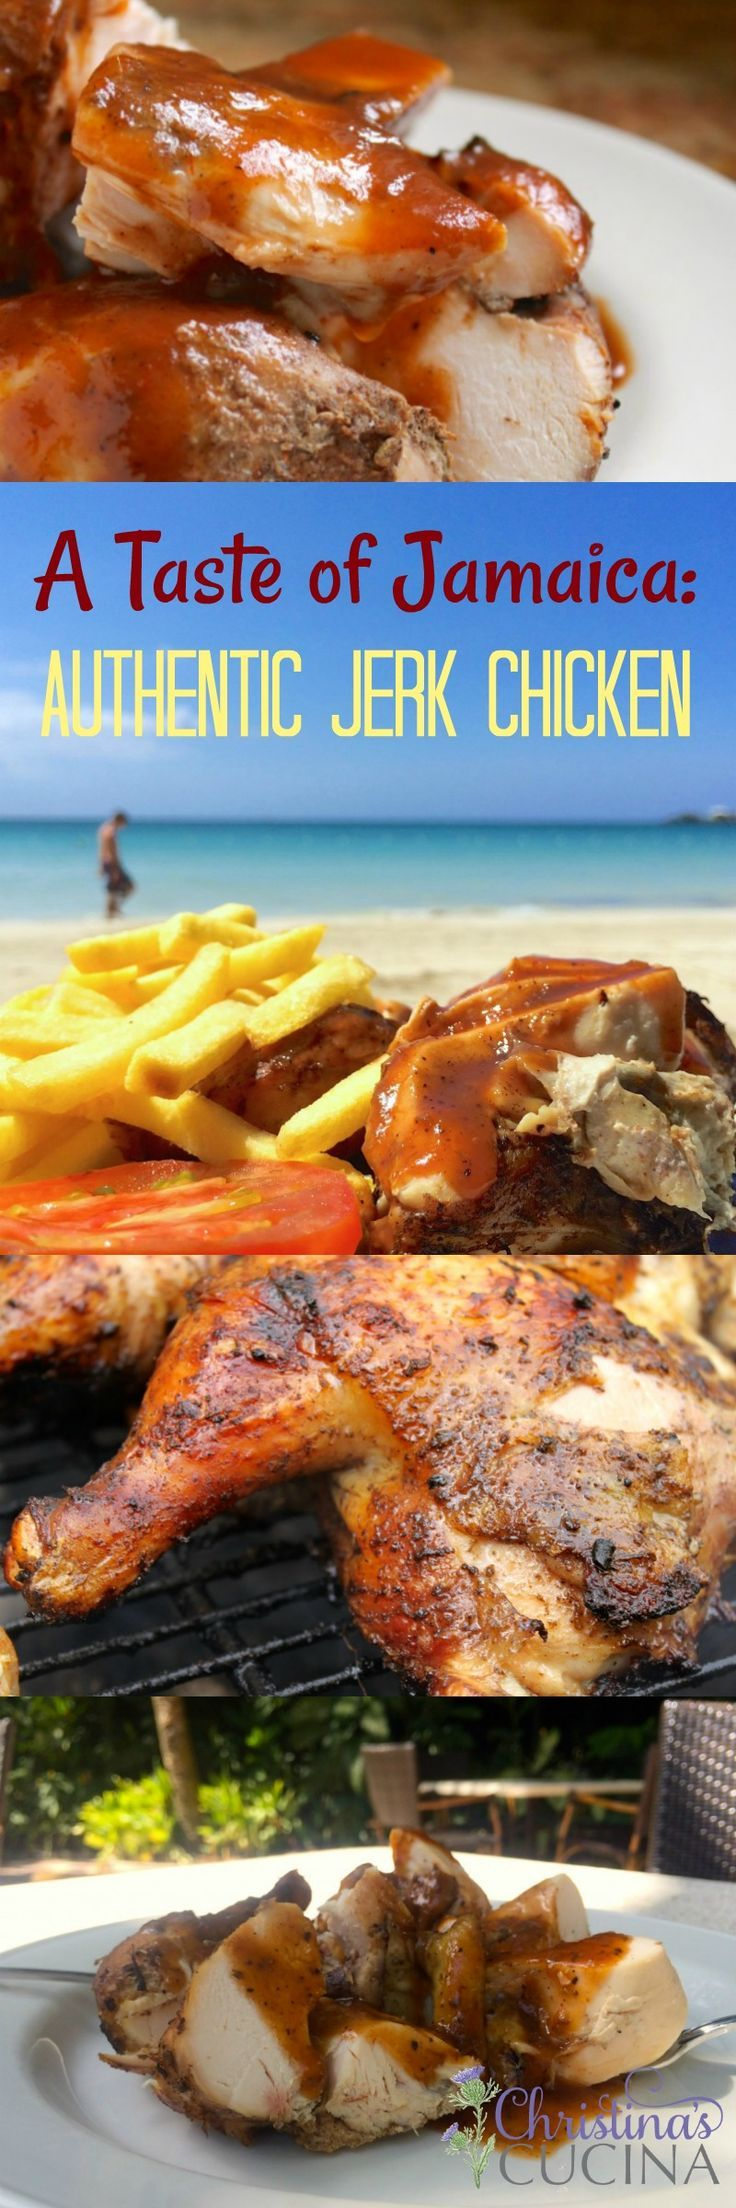 Authentic Jerk Chicken recipe from Chef Dwight Morris.